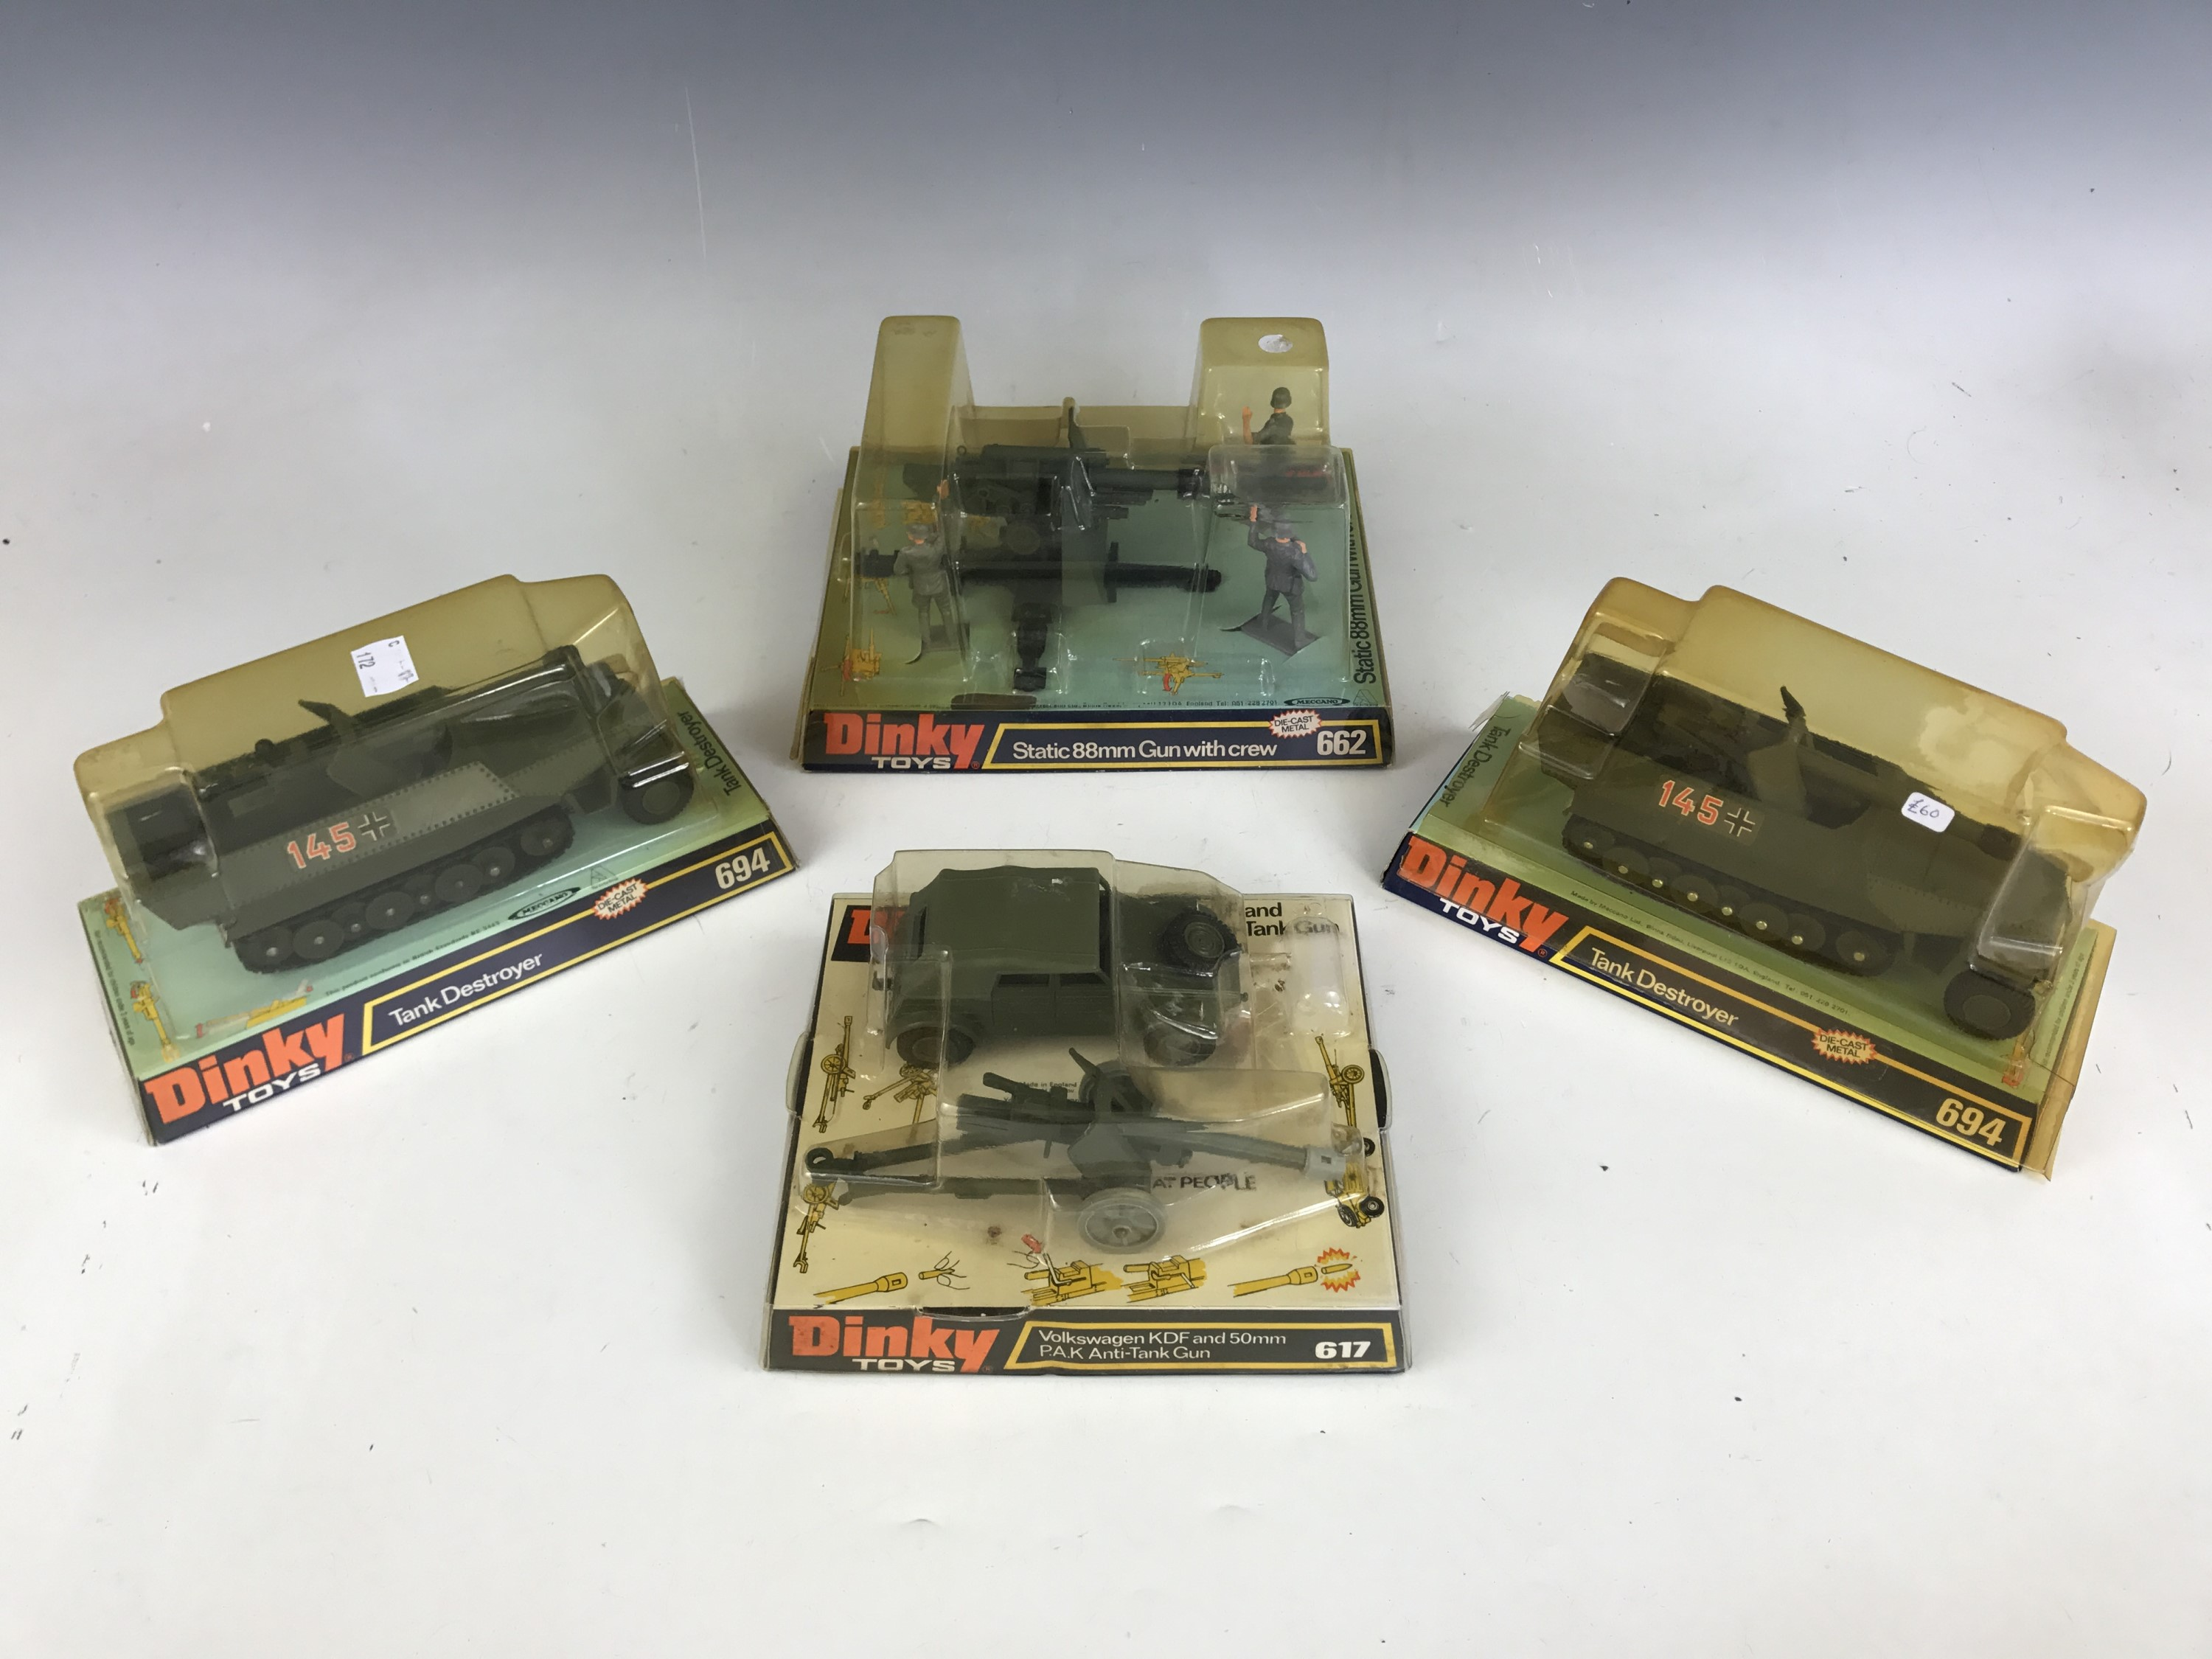 Lot 56 - Vintage military Dinky Toys, including 662 Static 88mm Gun with crew, 617 Volkswagen KDF and 50mm